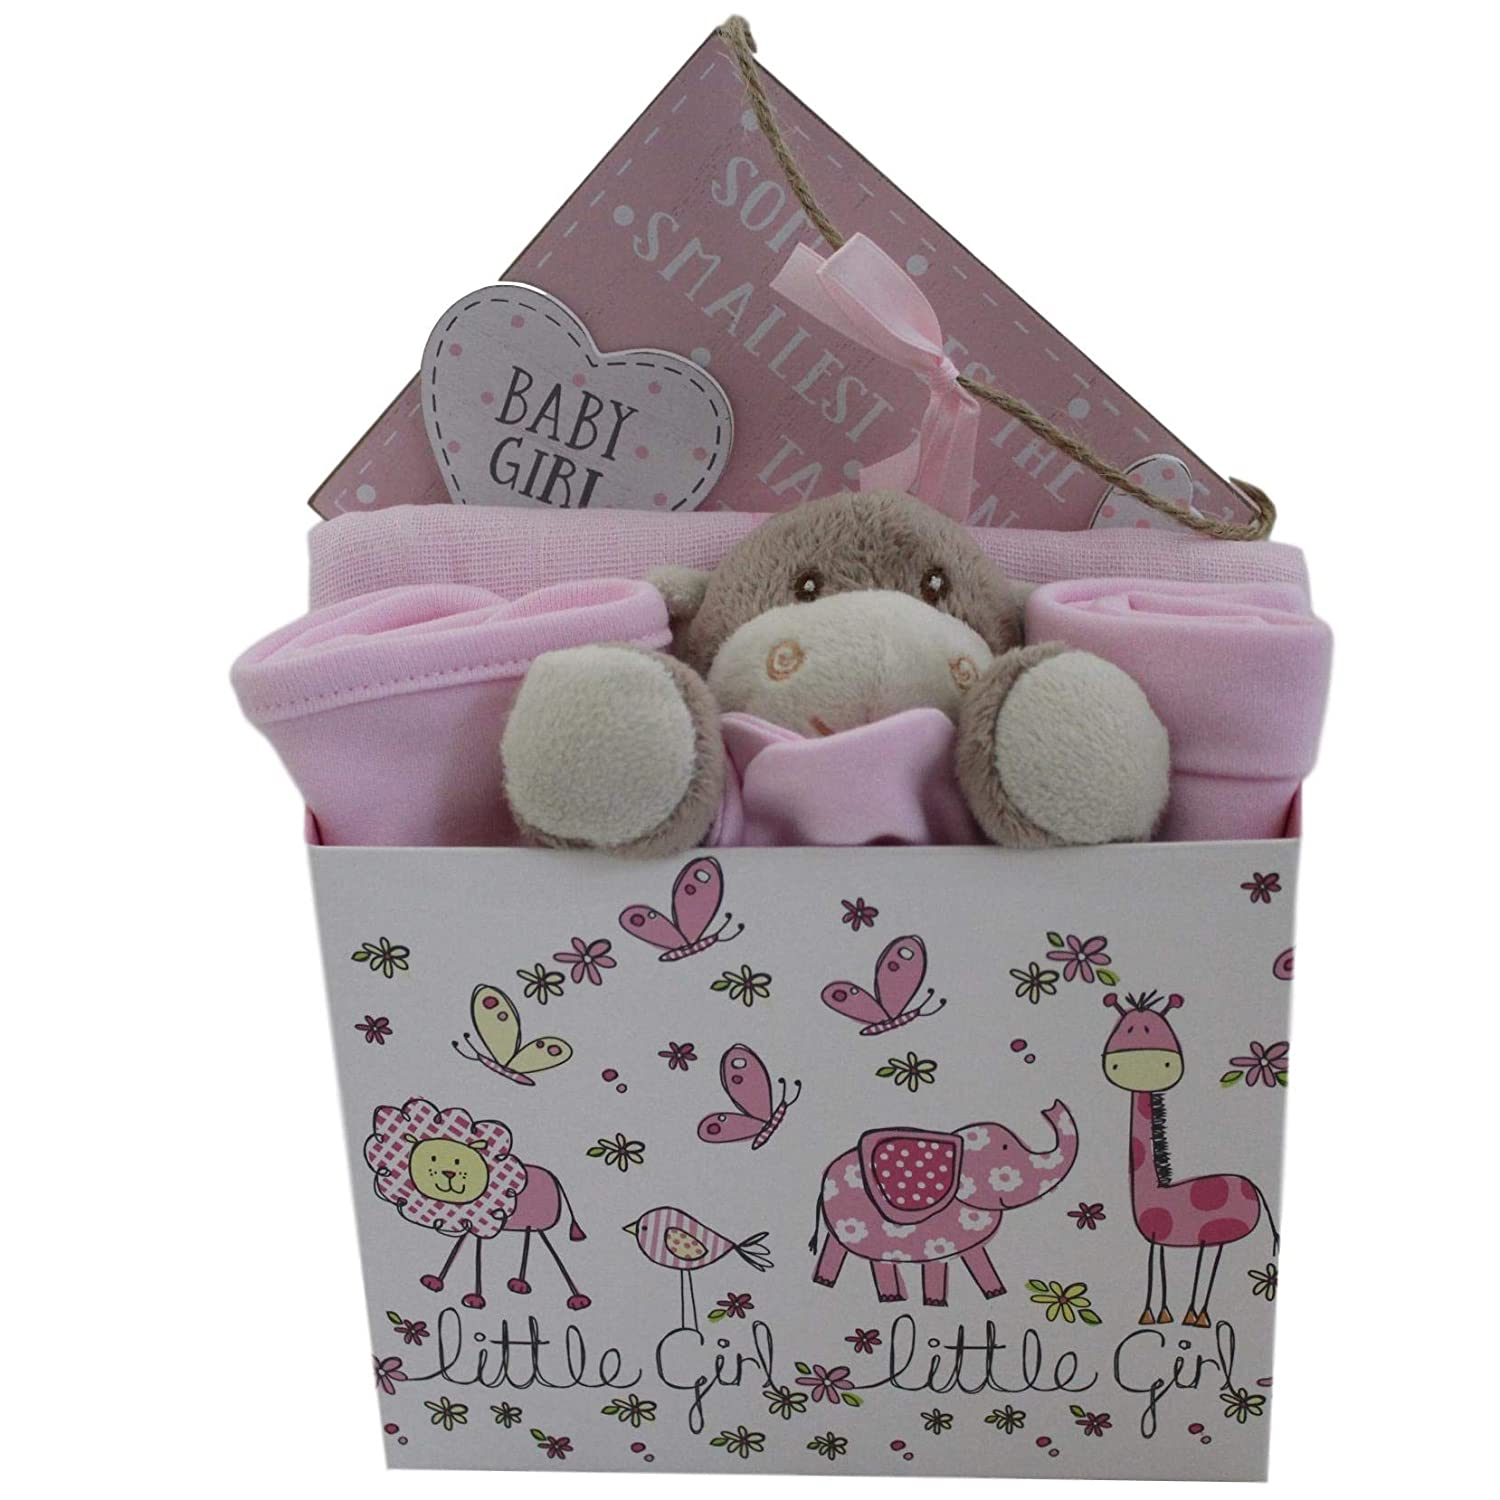 Baby Girl Gift Set Baby Girl Gift Basket Baby Girl Gift Hamper Unique Baby Gift Baskets